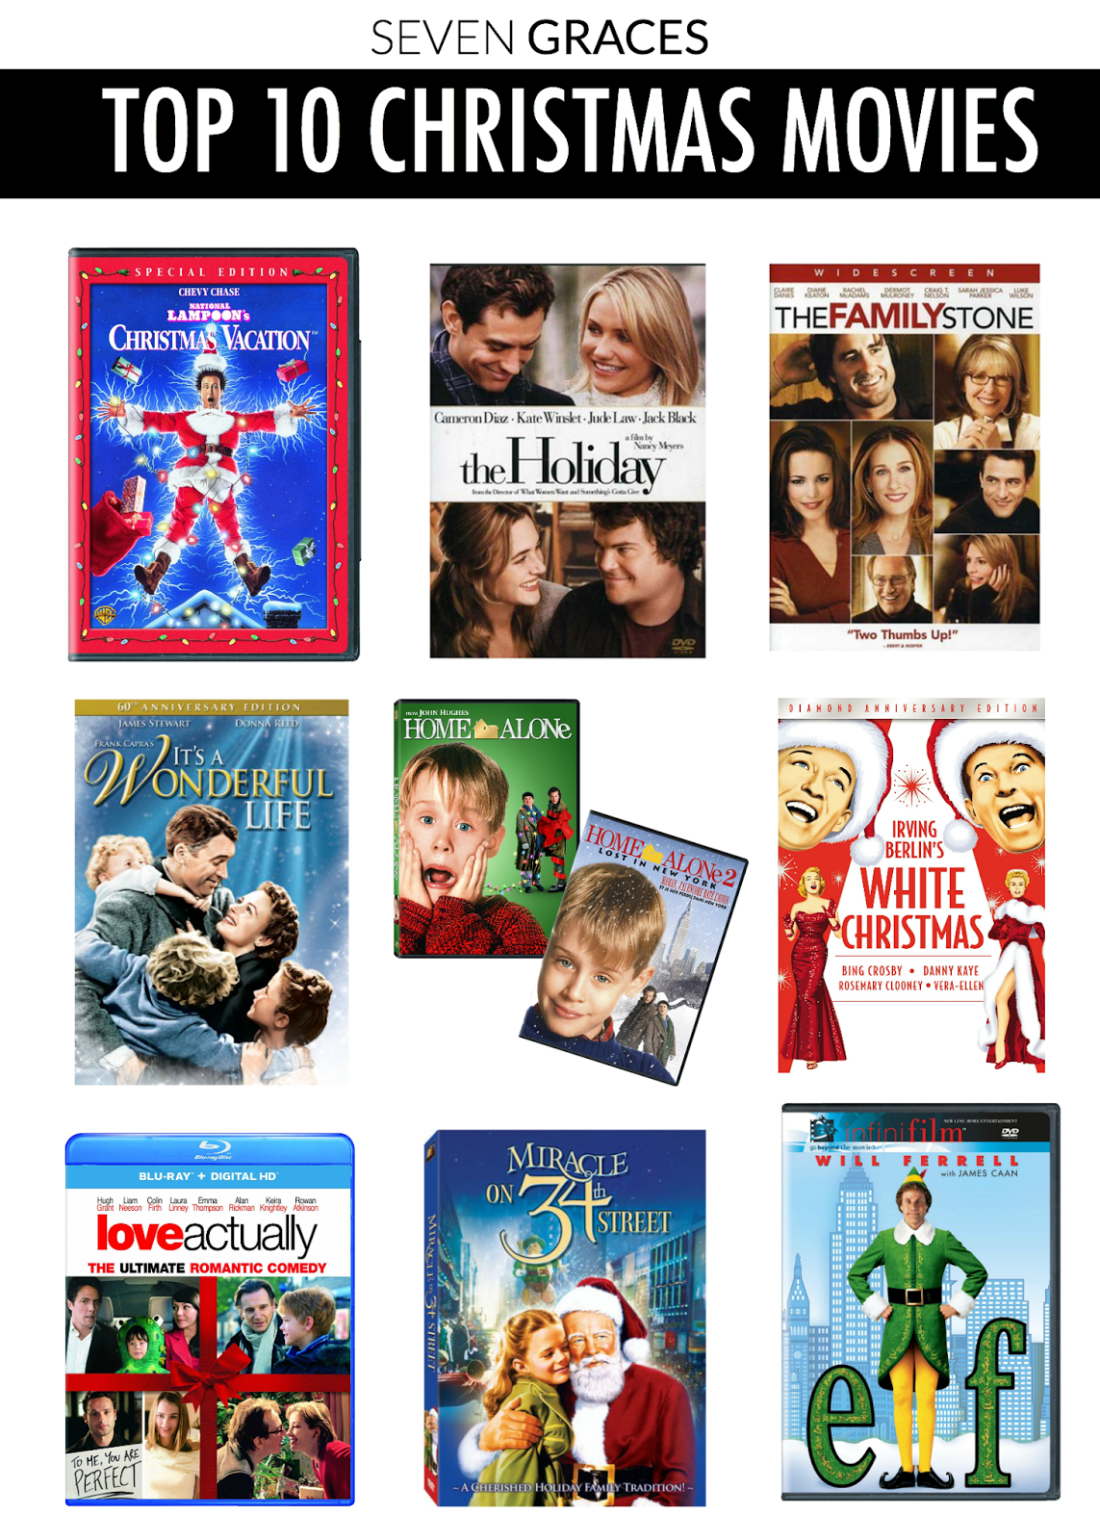 best christmas movies my top 10 - Best Christmas Movie Ever